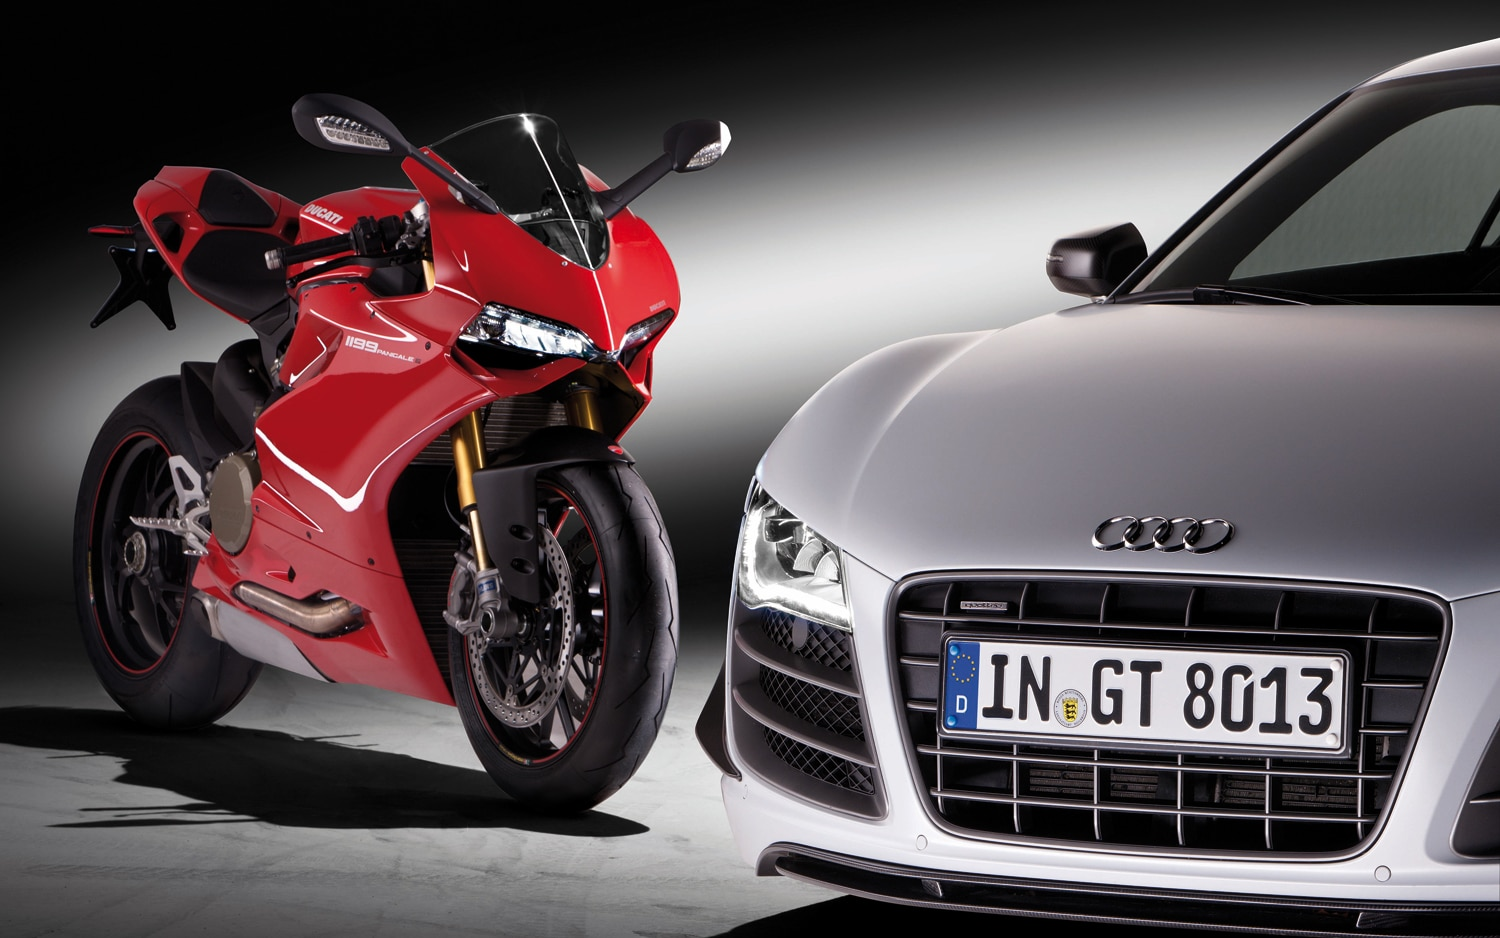 Audi R8 And Ducati Panigale1